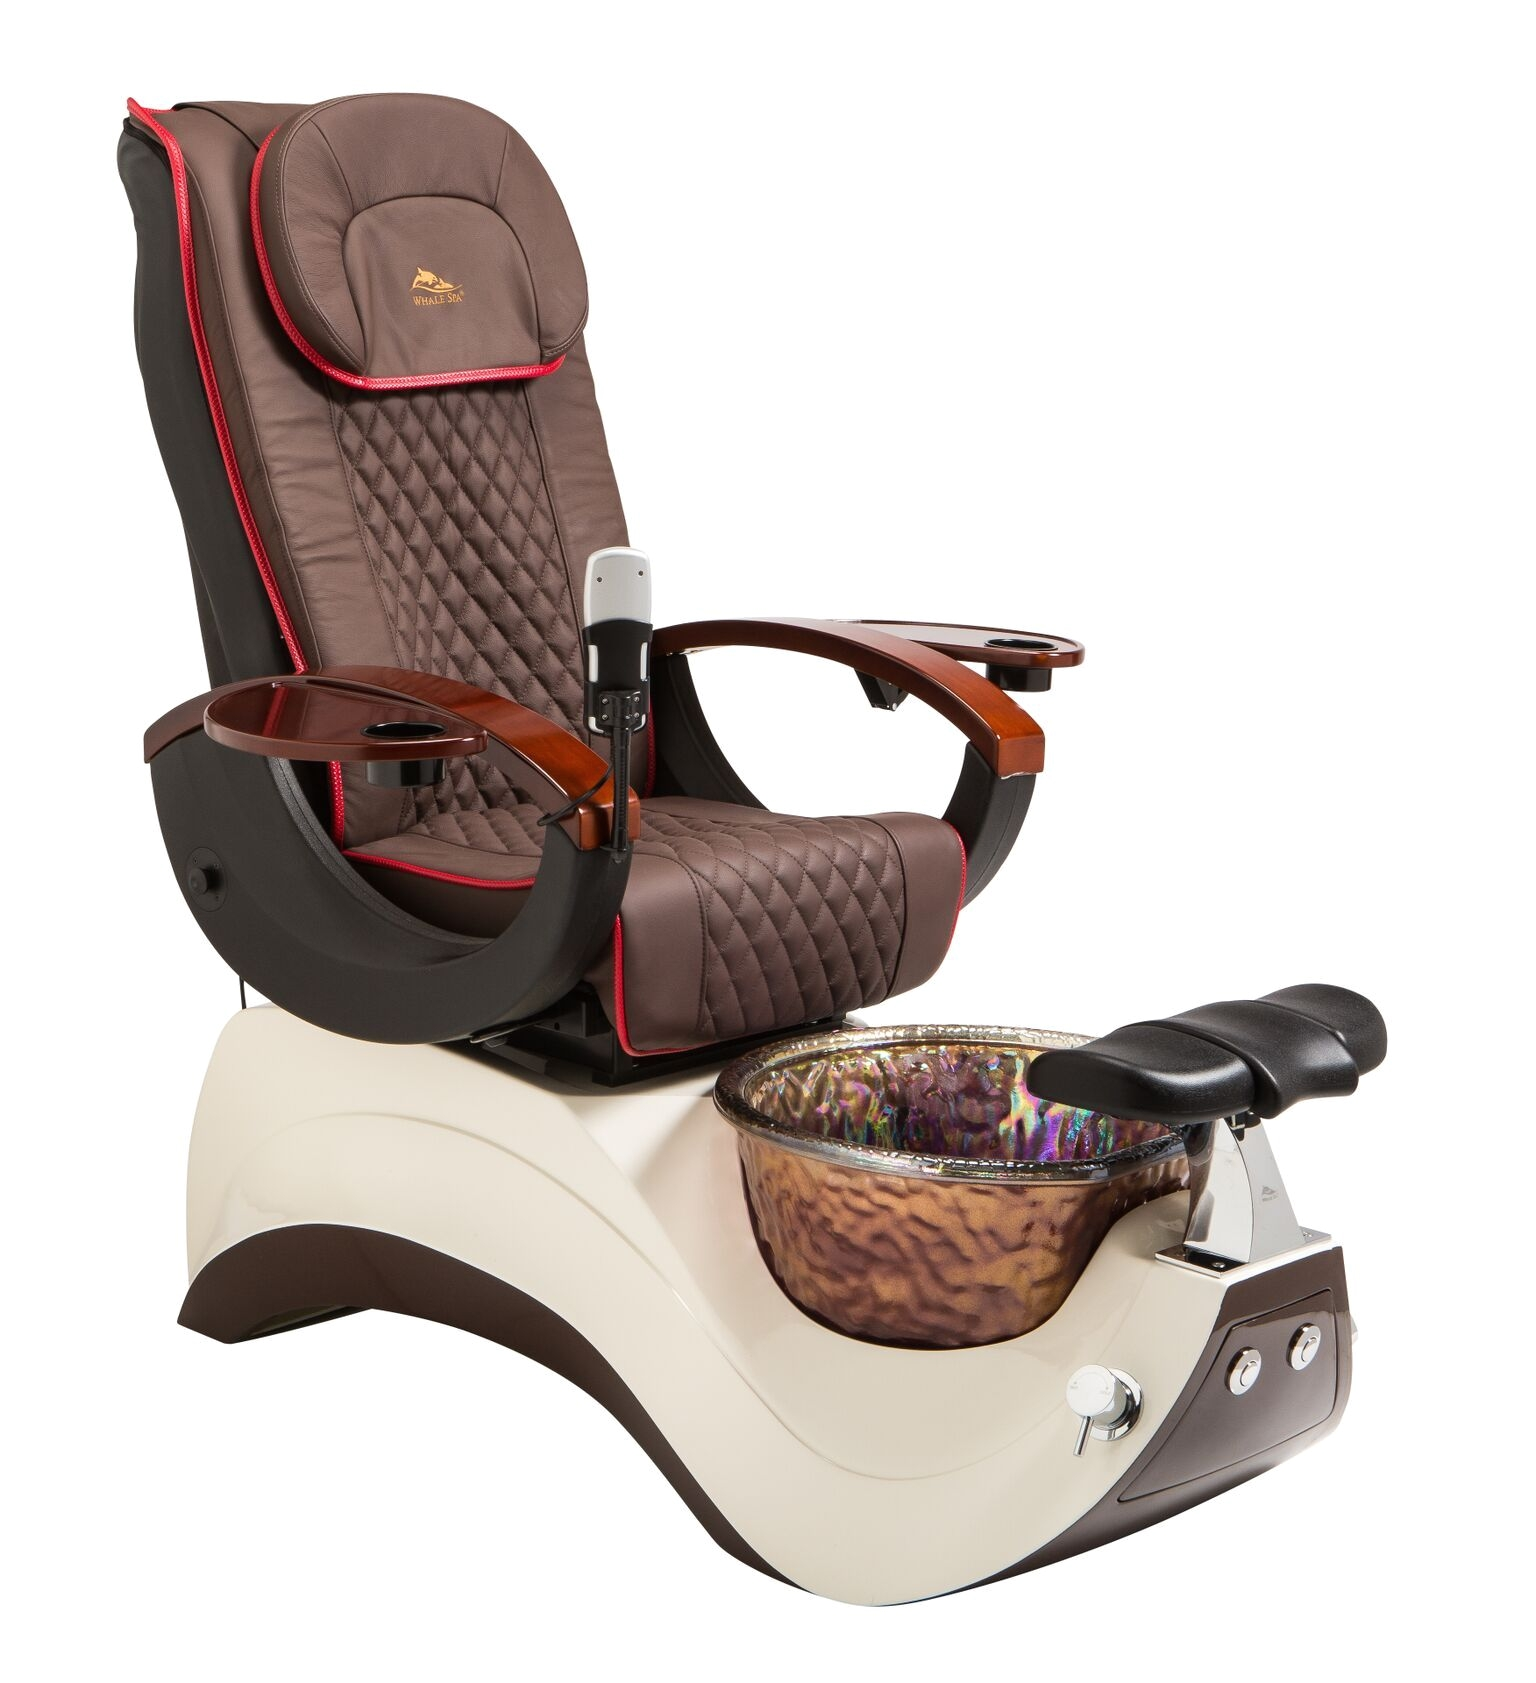 Gulfstream Lavender Pedicure Chair Glass Sink Spas Spa Chairs Pedicure Spa Lee Nail Supply